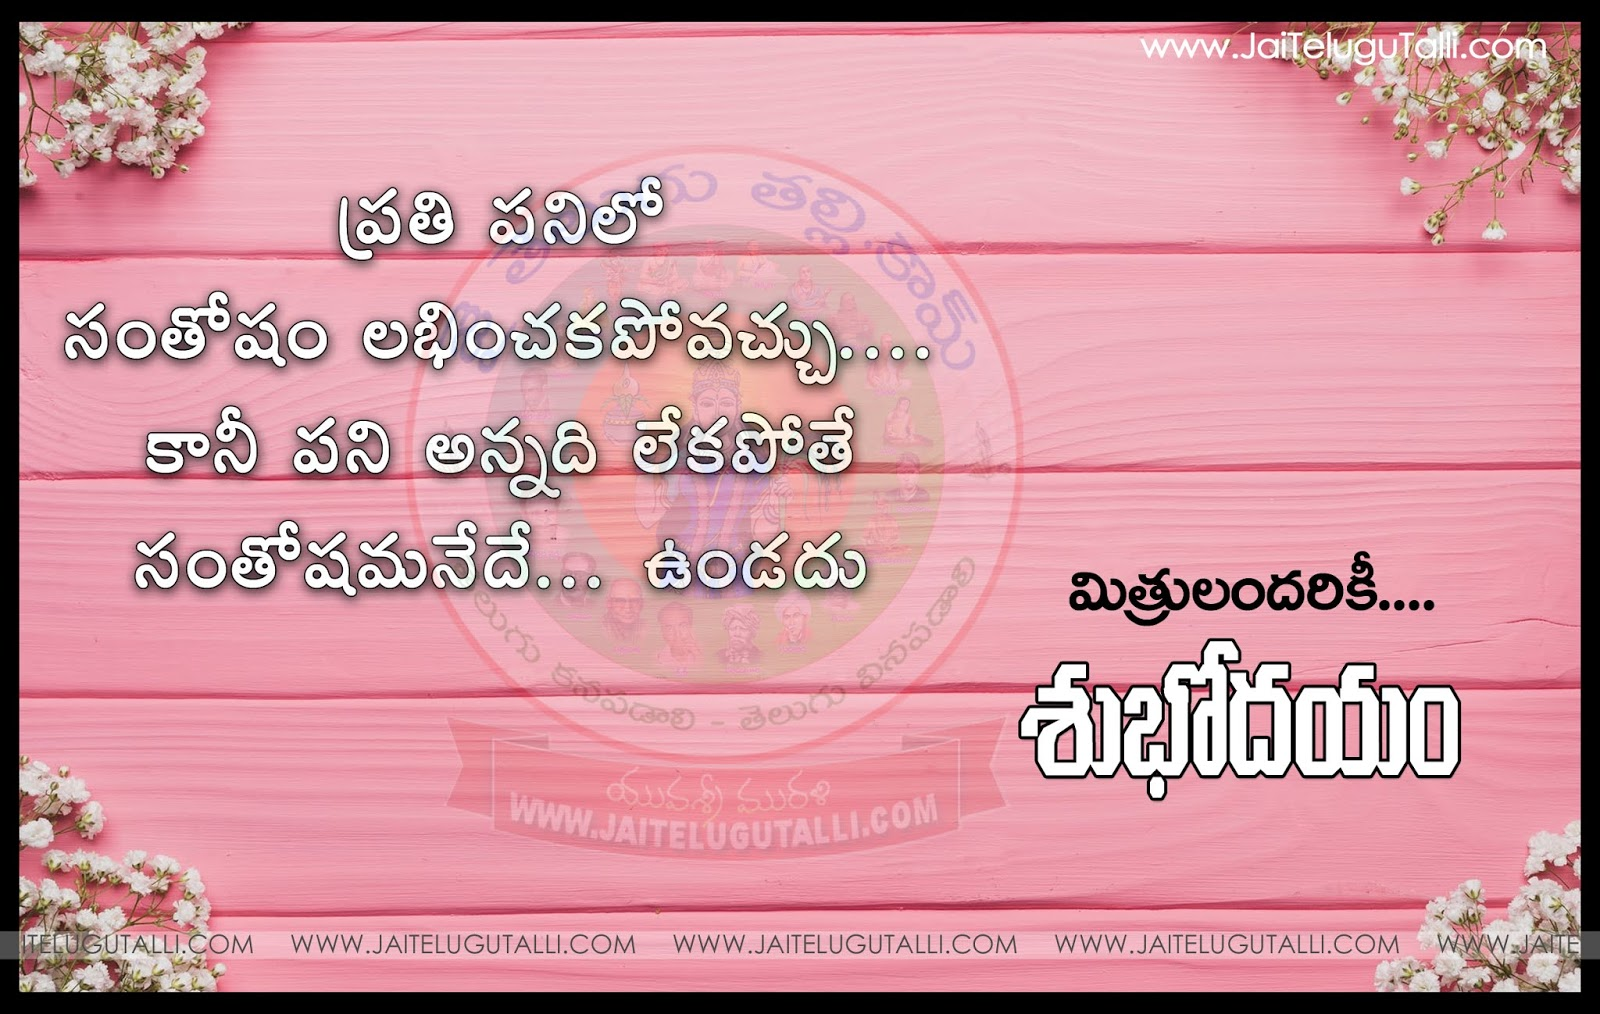 Telugu Good Morning Greetings Quotations Hd Wallpapers Best Online